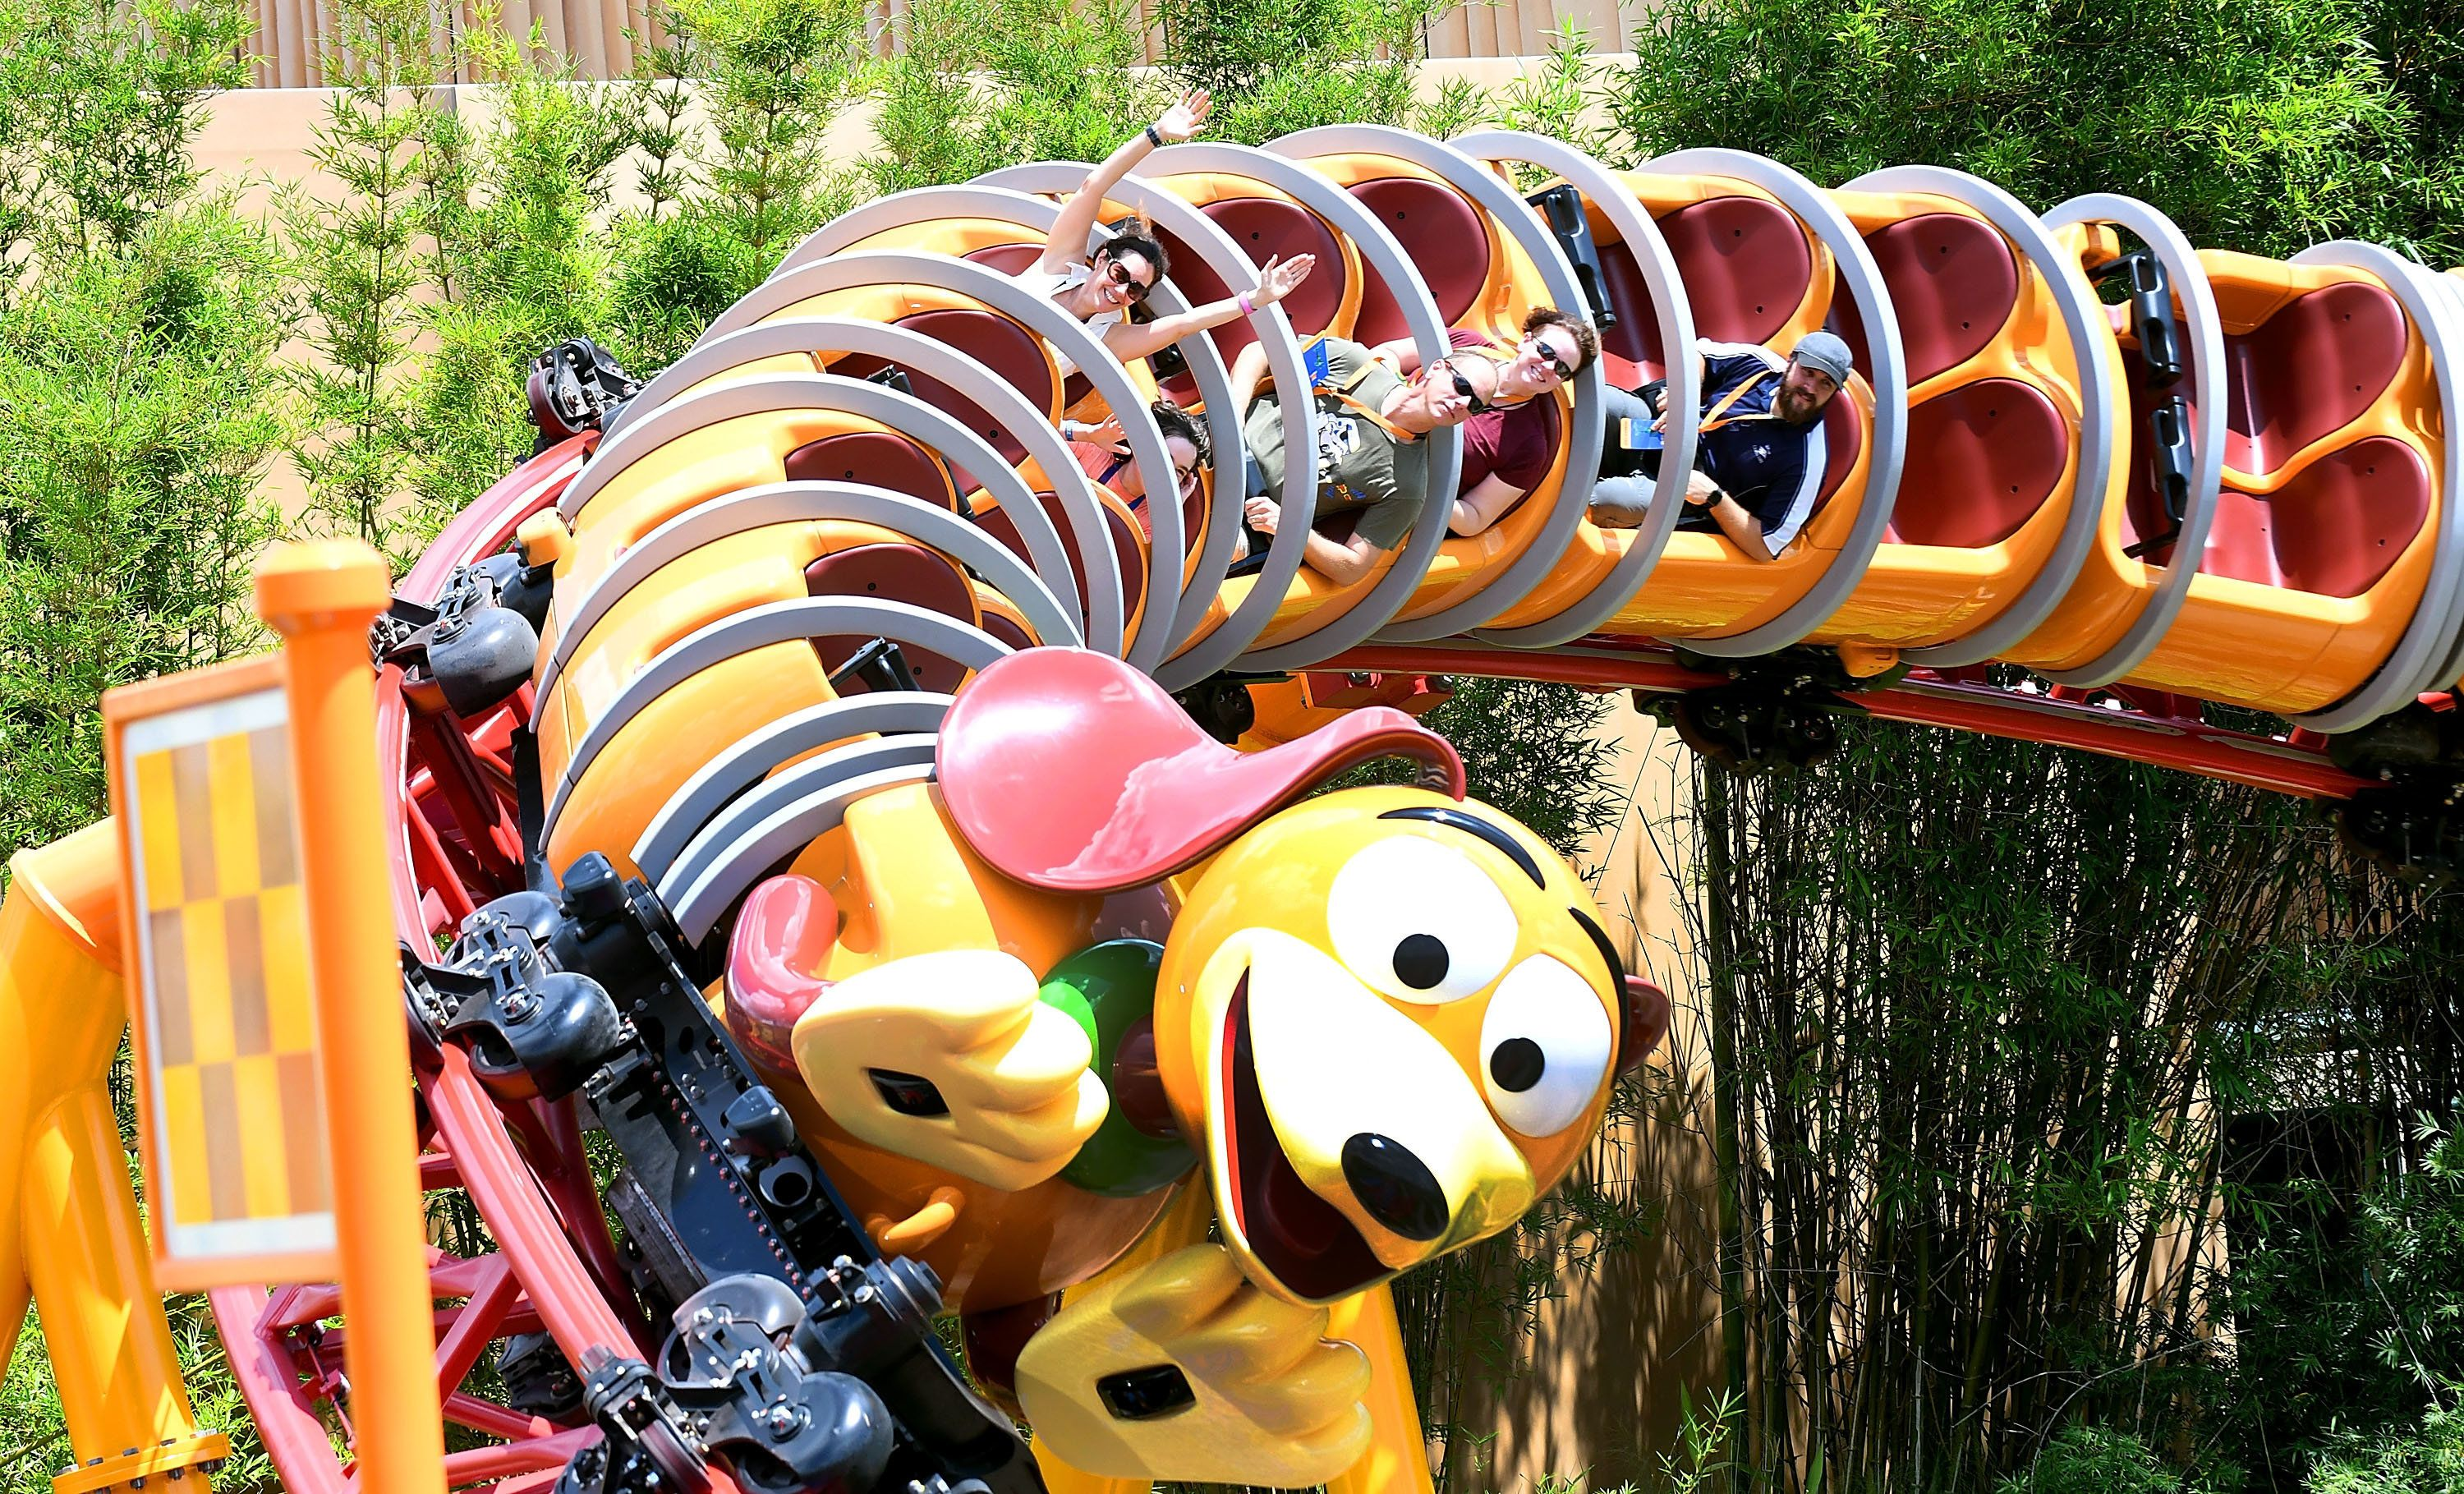 Although itfeatures small drops, the coaster isconsidered fun for kids and adults.